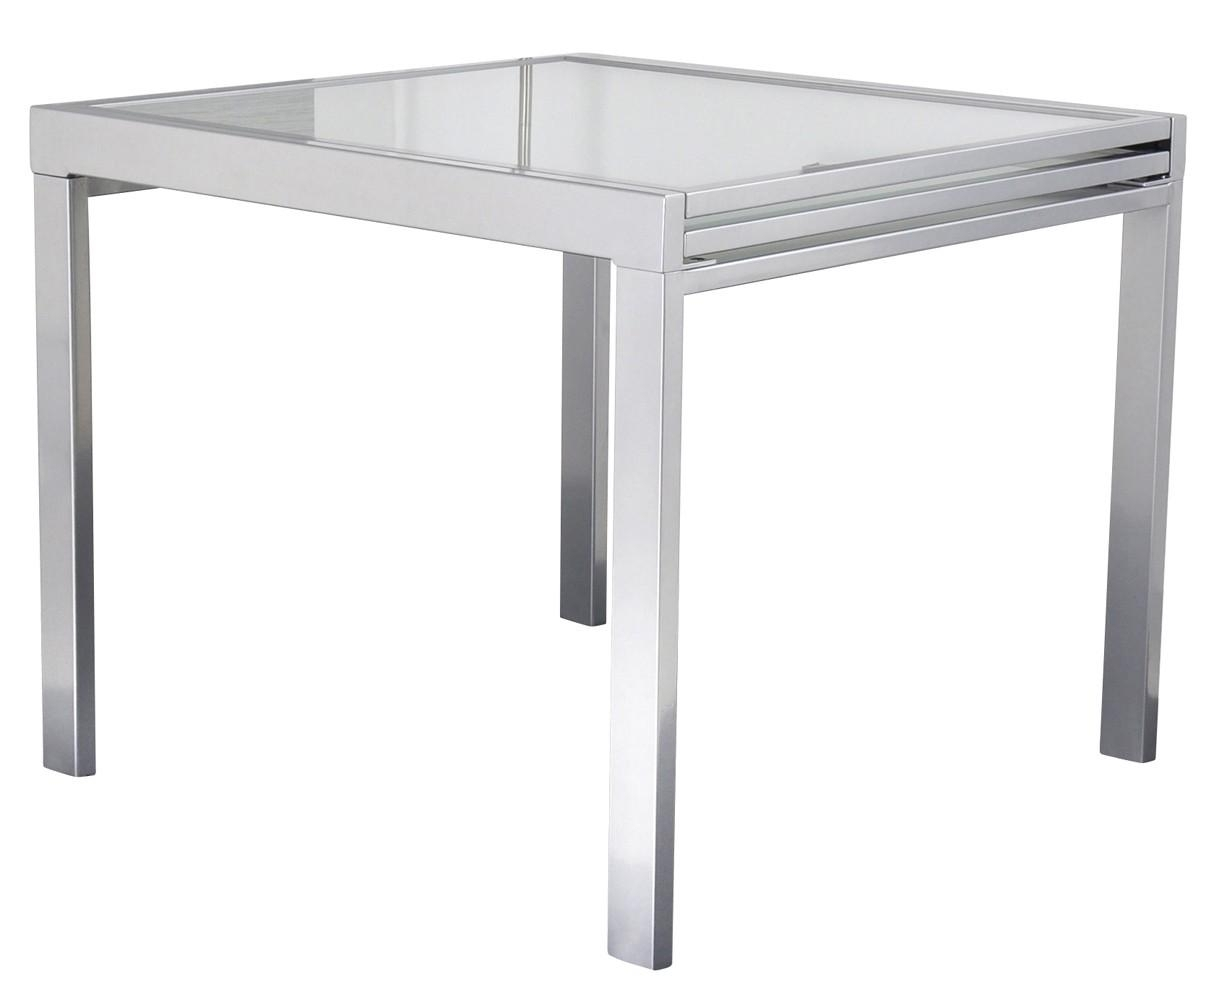 Les tendances table carr e extensible grise - Table en verre extensible ...